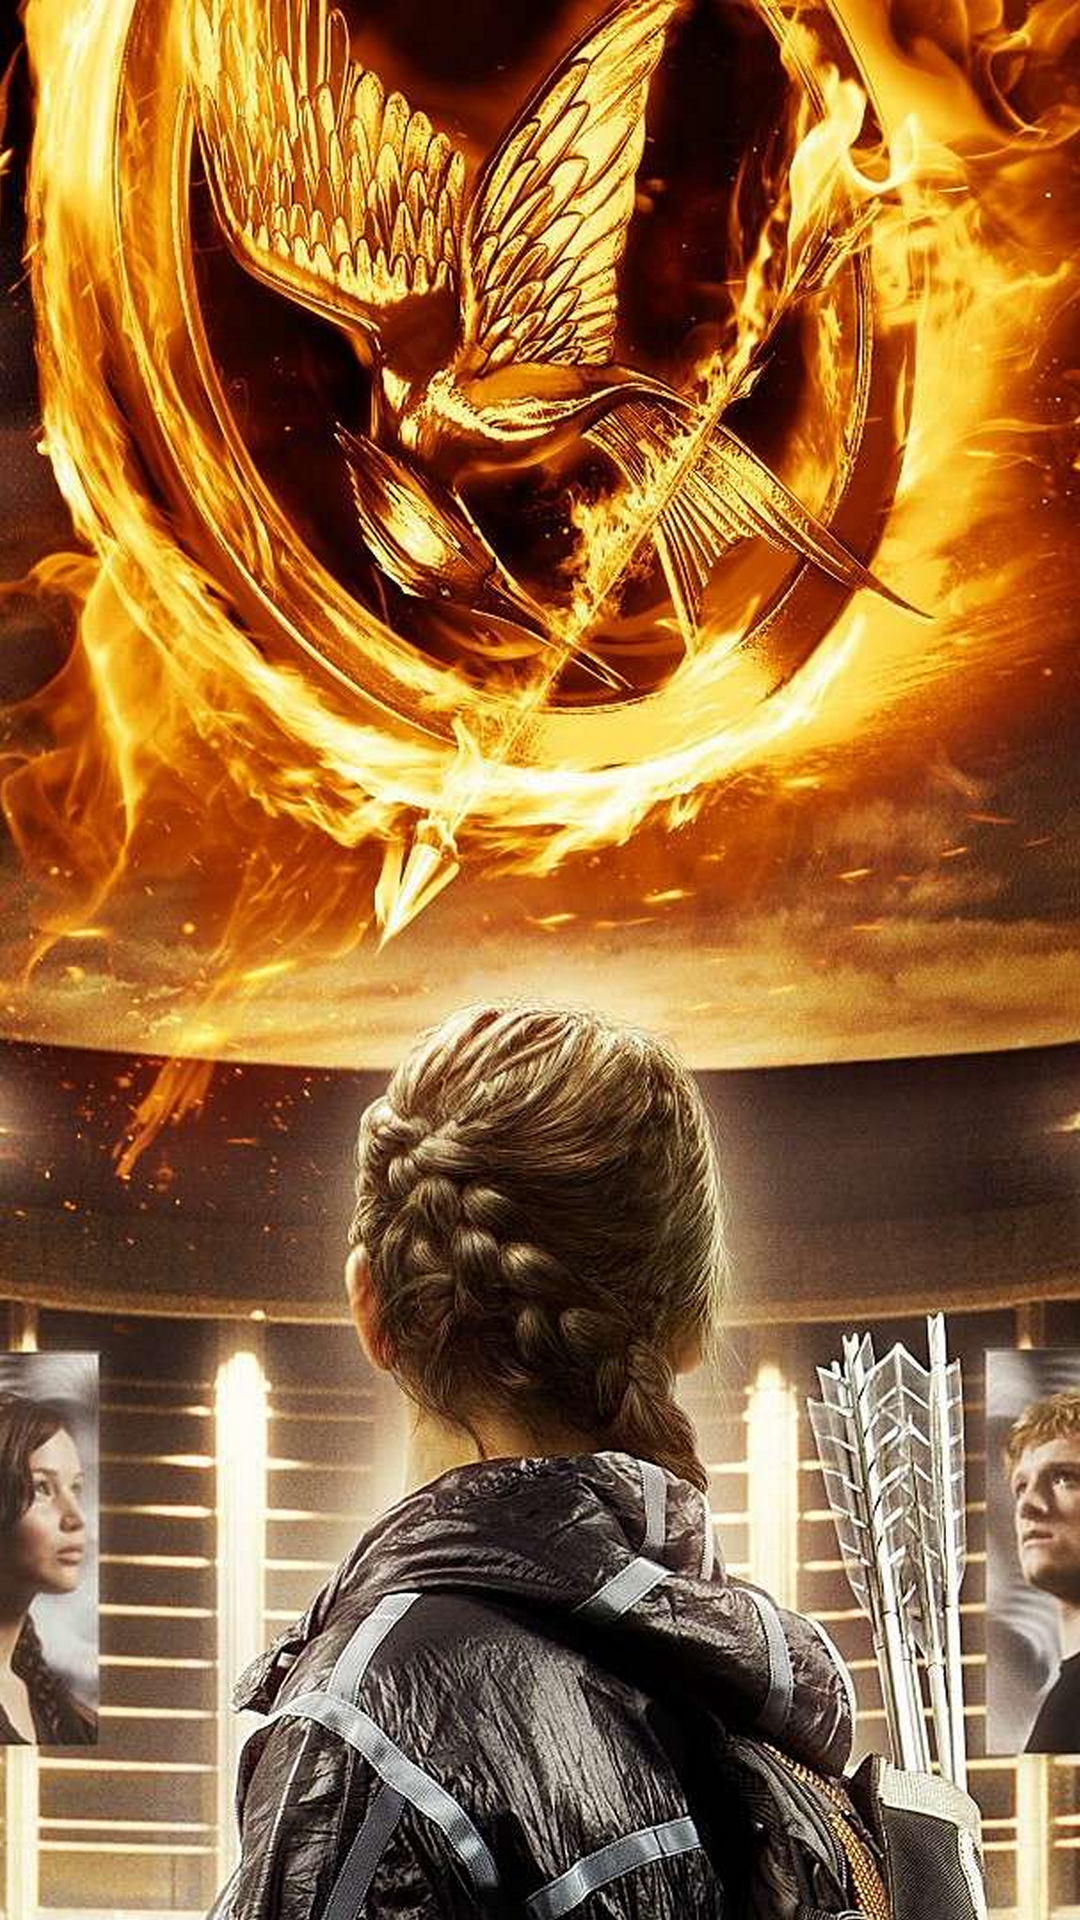 Wallpapers For Galaxy The Hunger Games Catching Fire